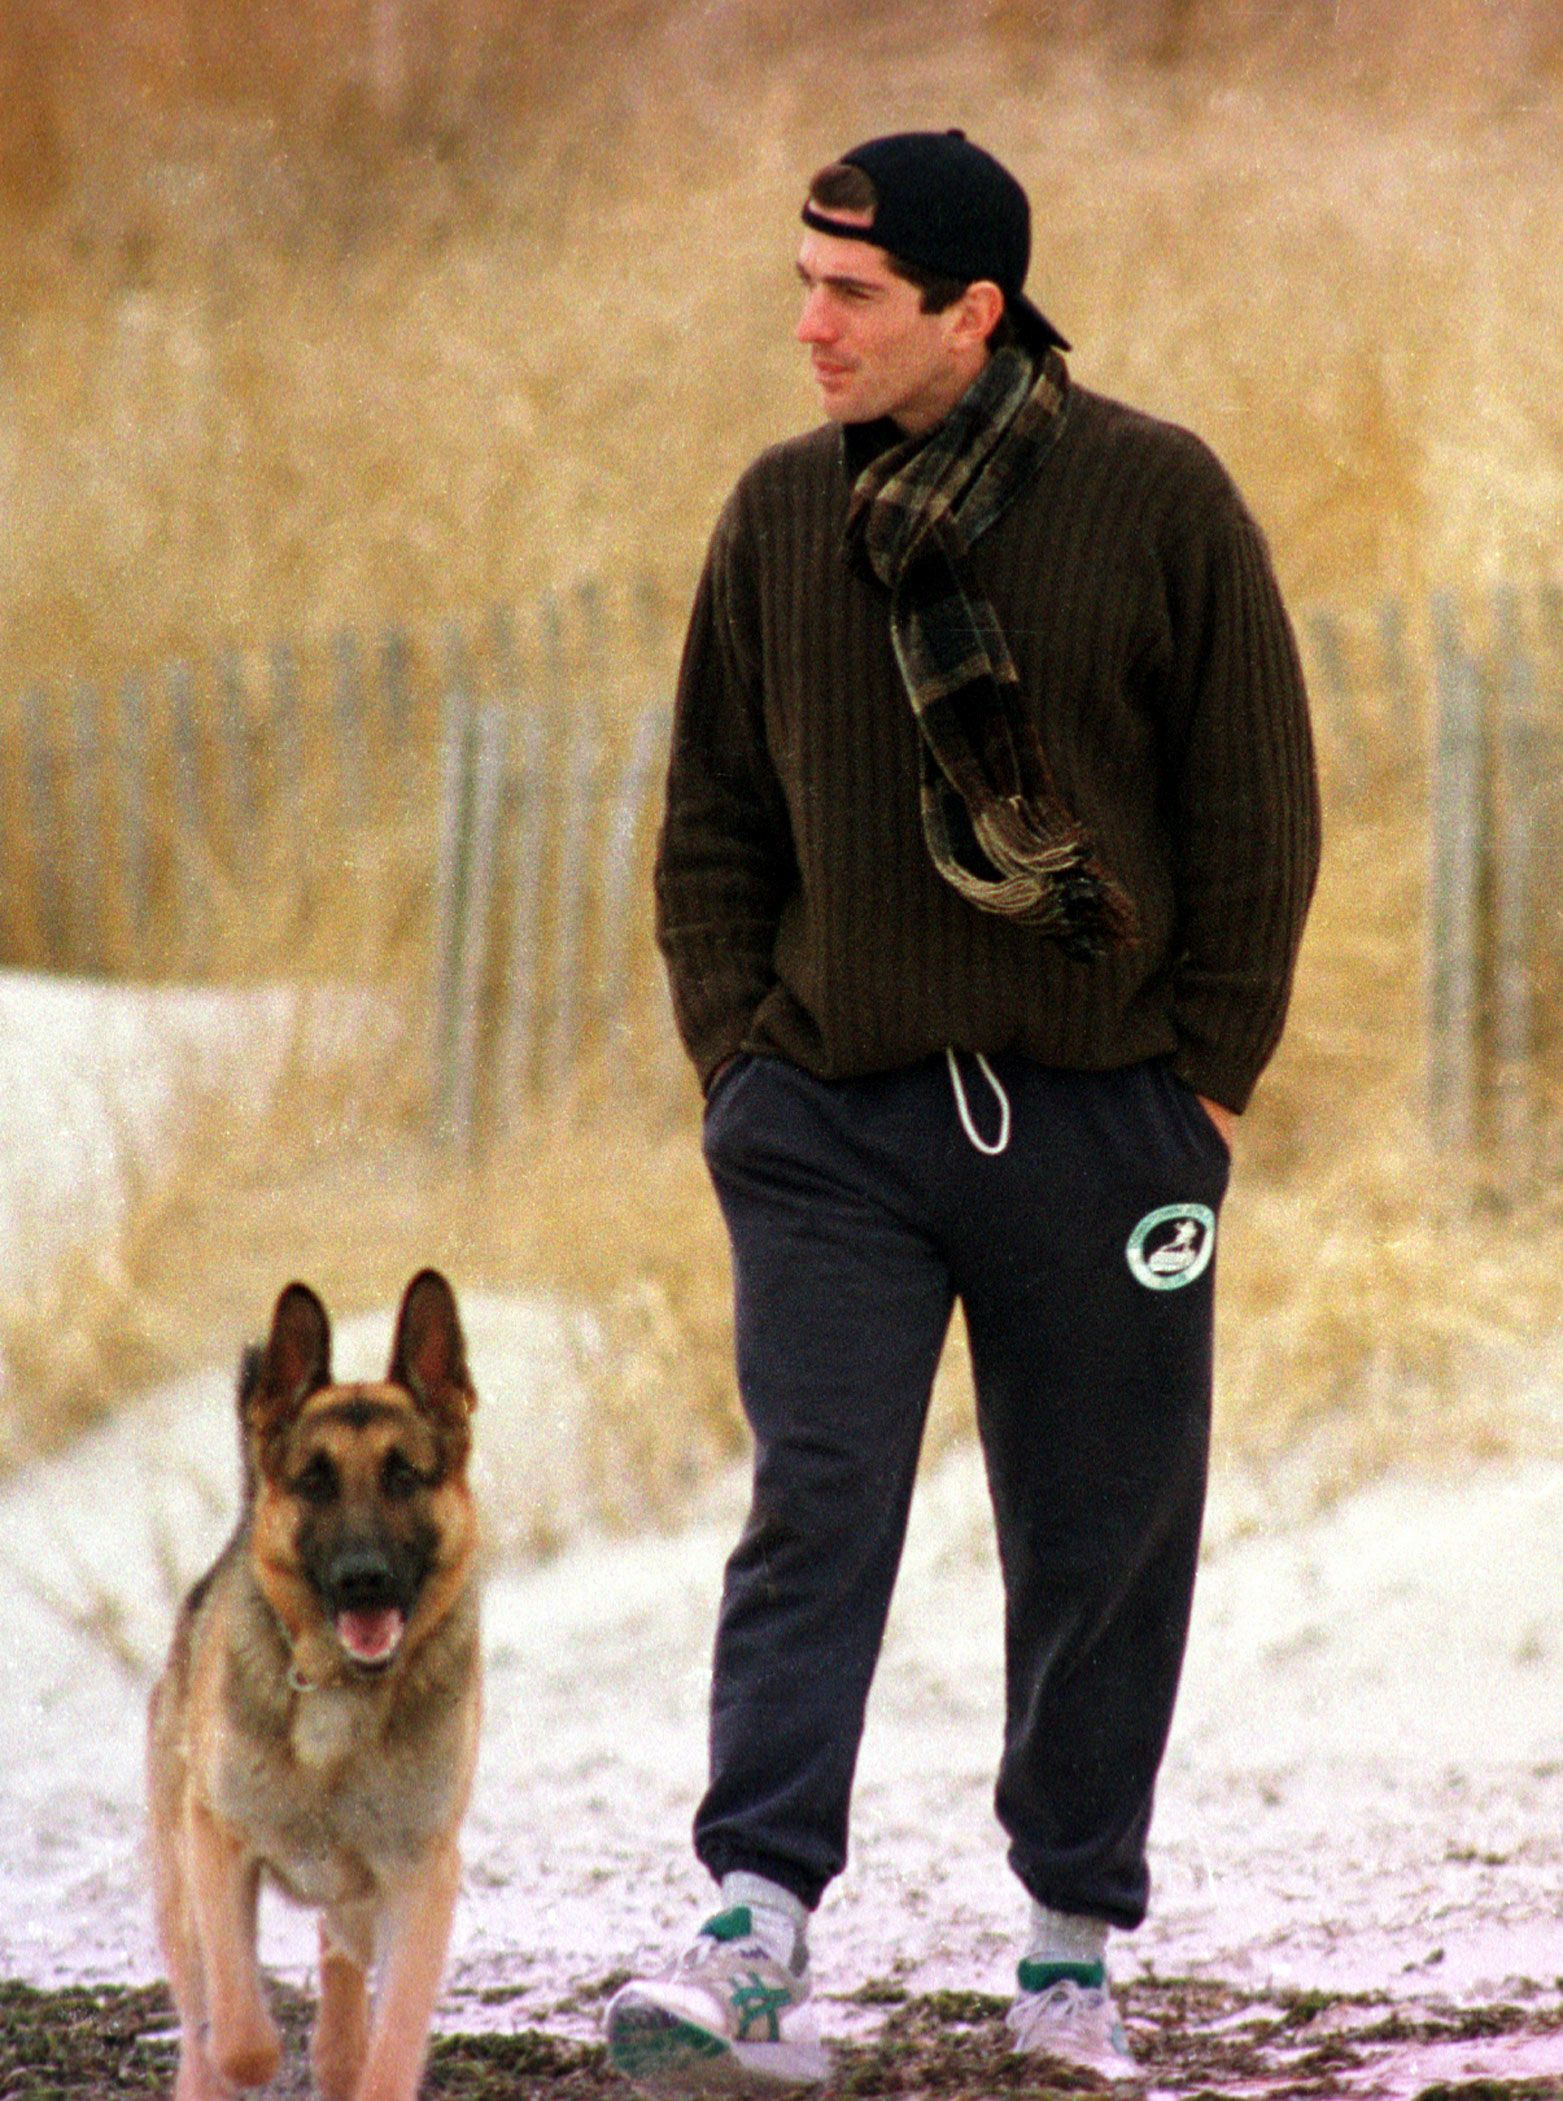 John F. Kennedy Jr. looks out to sea while walking with his dog along the beach on January 24, 1995 | Photo: Getty Images